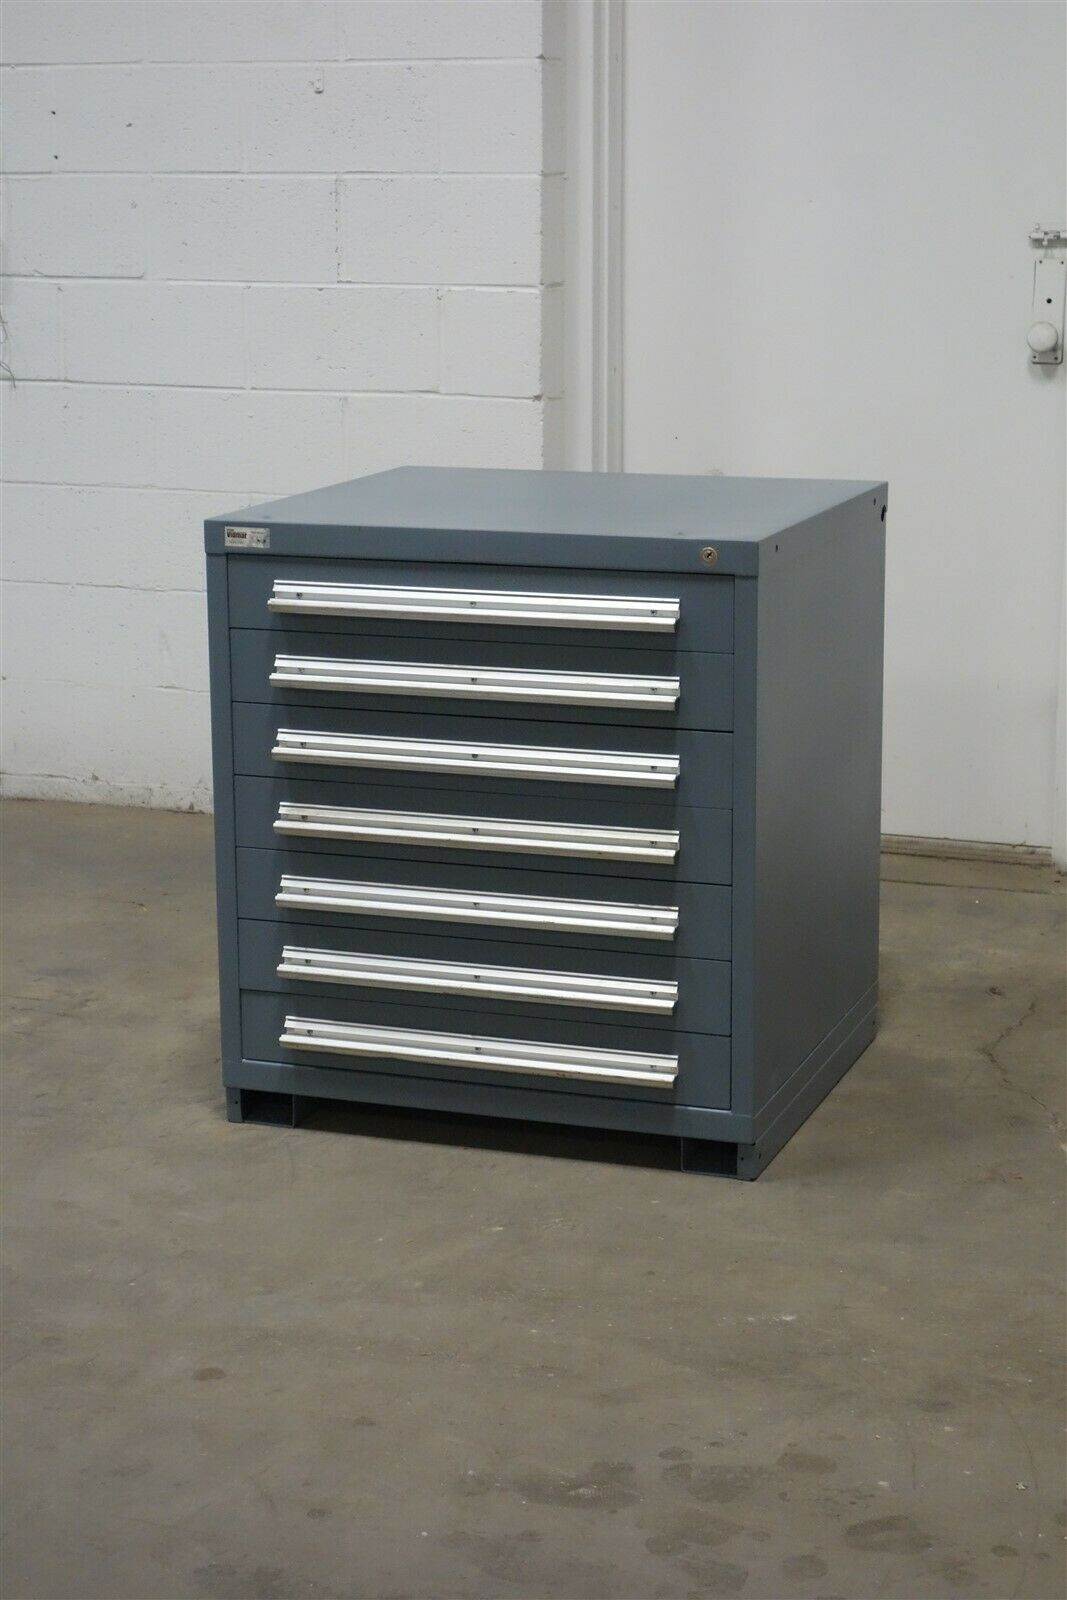 Used Vidmar 7 Drawer Cabinet 33 Tall Industrial Storage